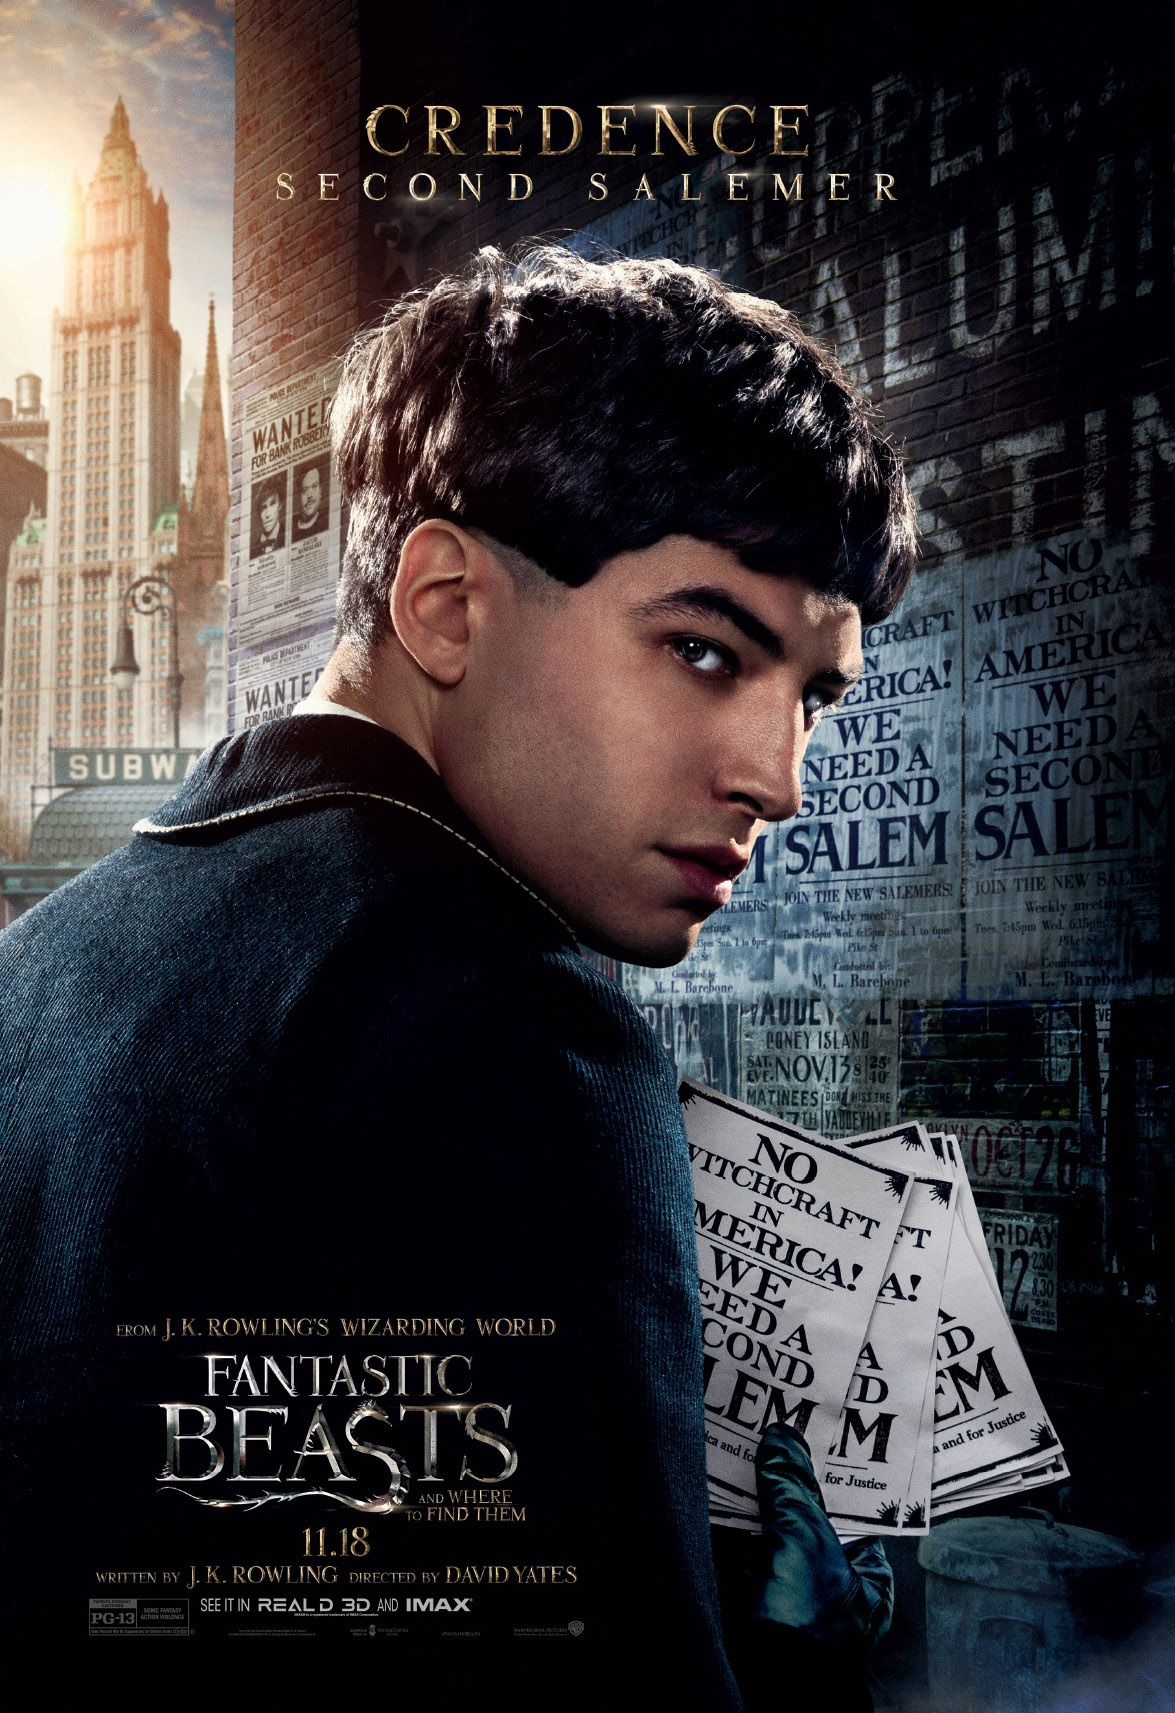 Credence Fantastic Beasts And Where To Find Them Animais